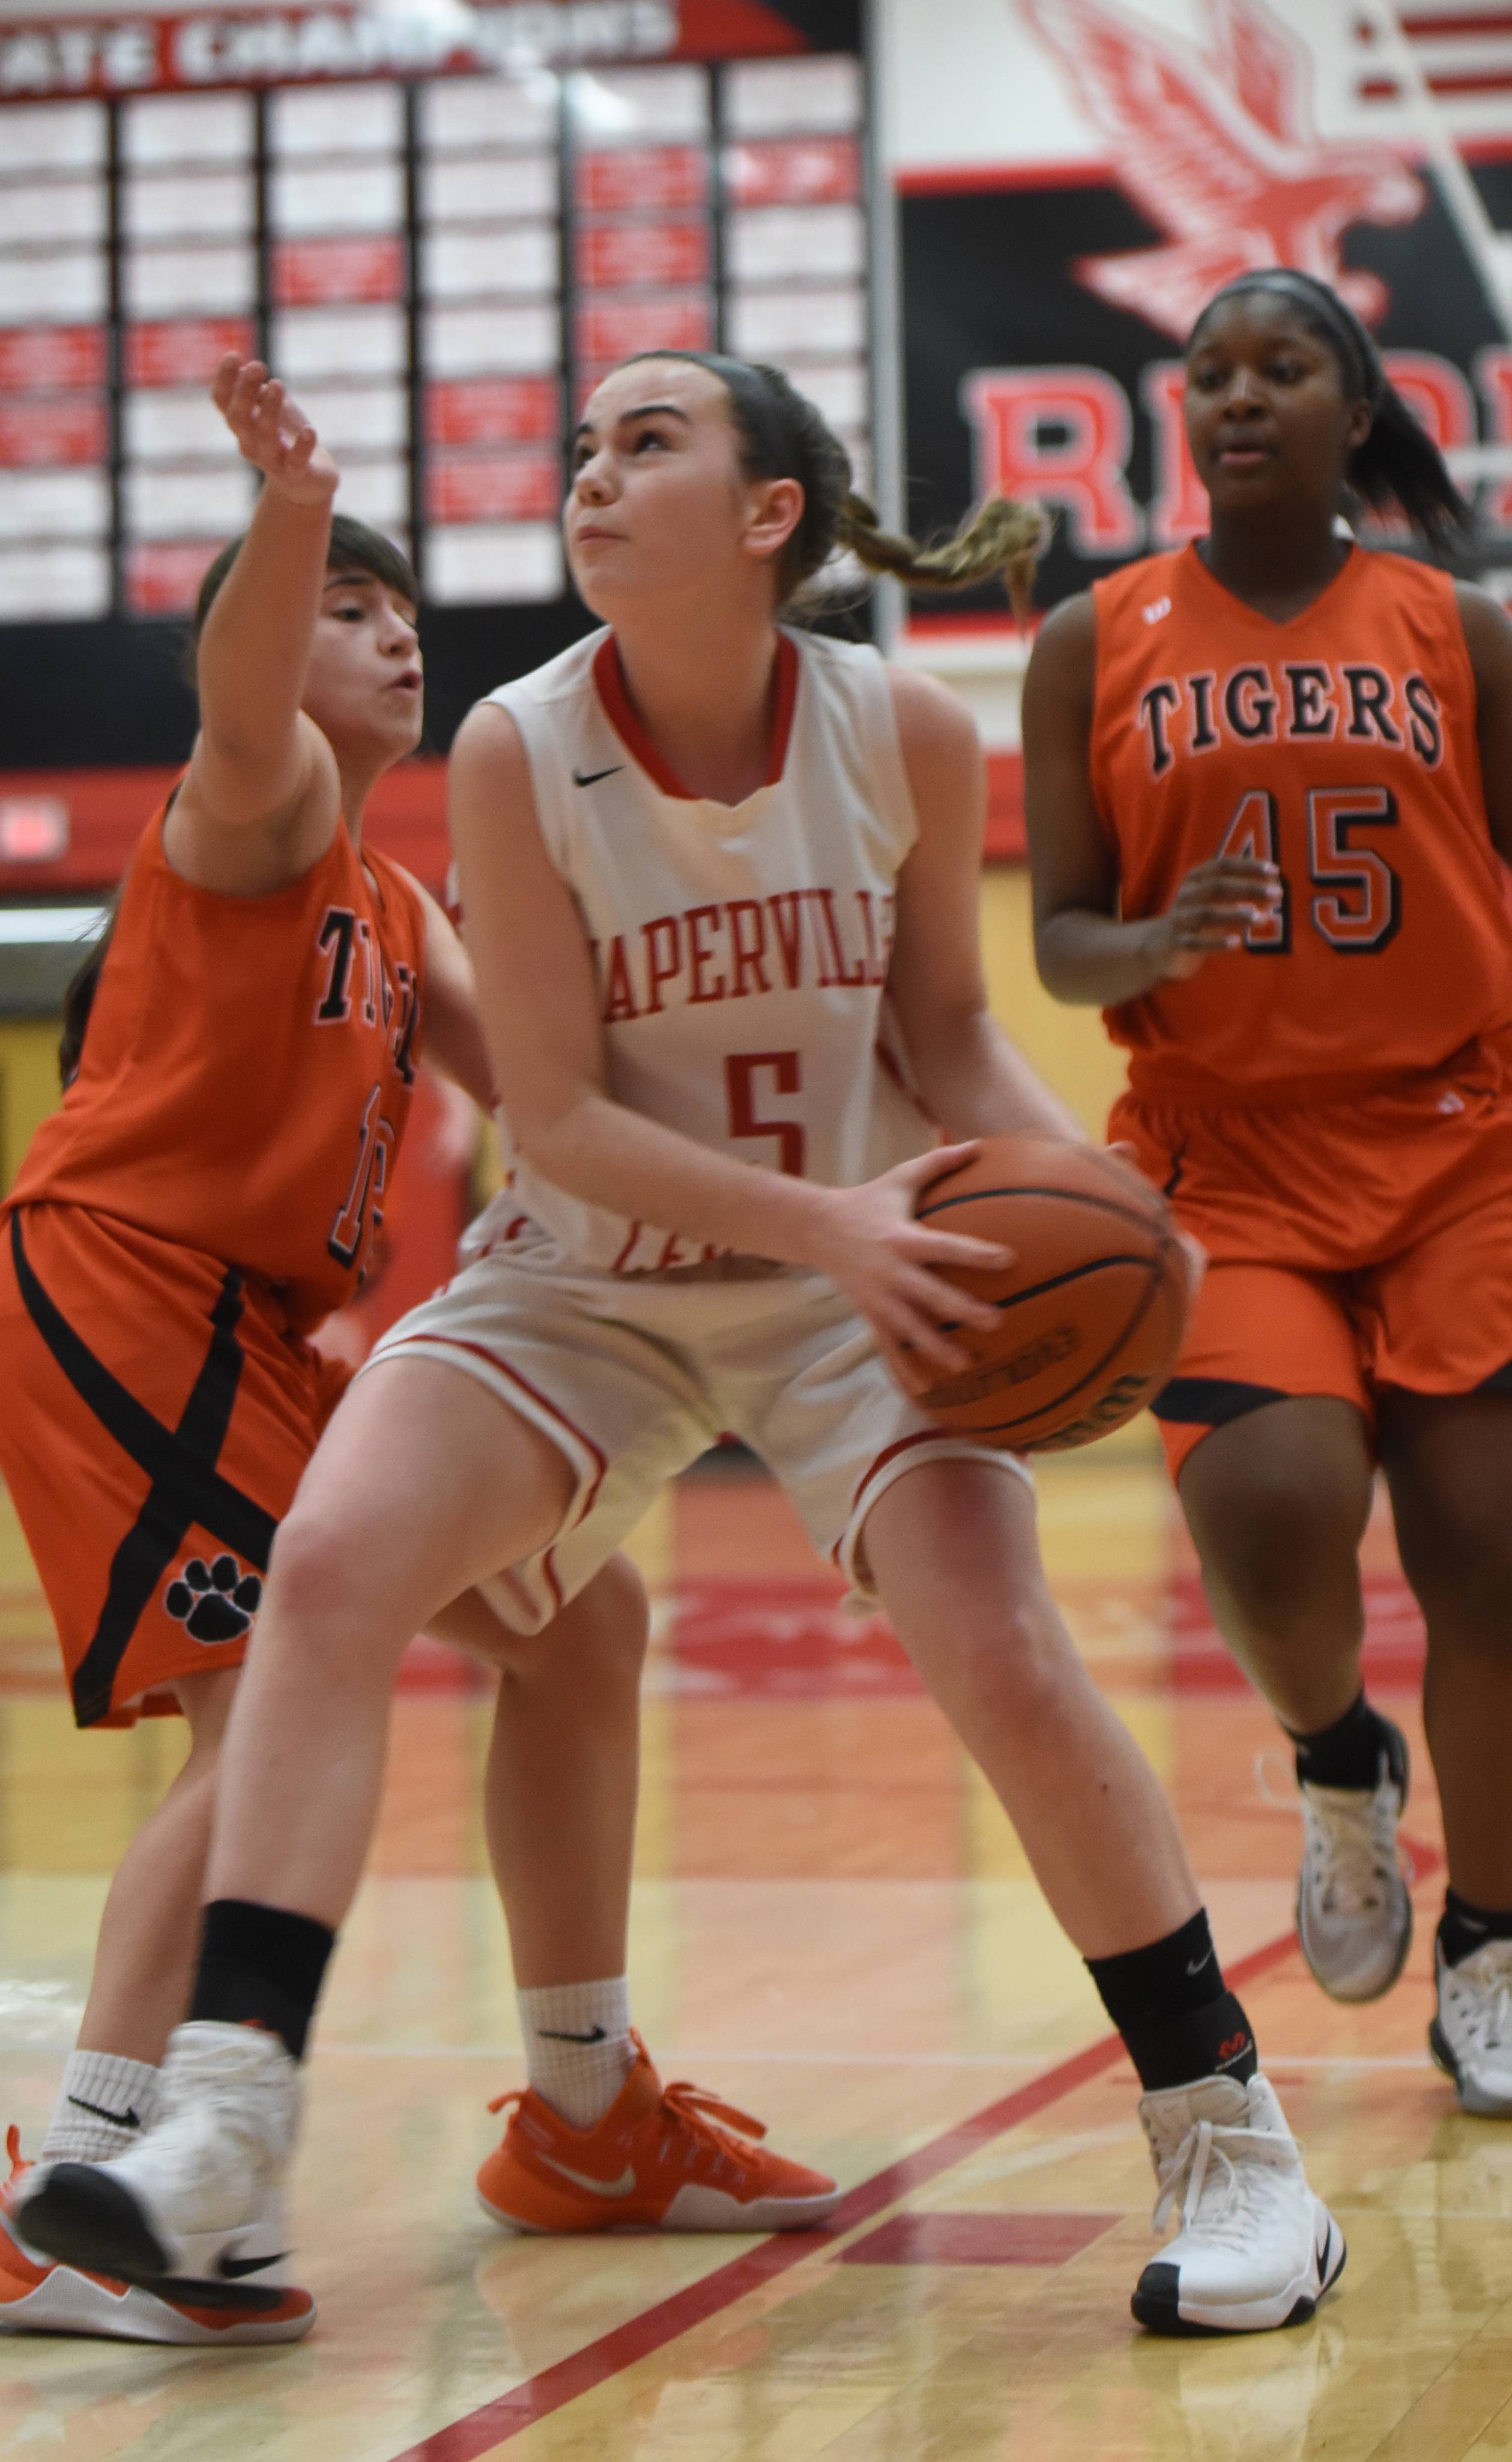 Wheaton Warrenville South's Mira Emma (12) tries to block Naperville Central's Erin Moran (05) as she looks to pass. This took place during the Wheaton Warrenville South at Naperville Central girls basketball game Thursday.